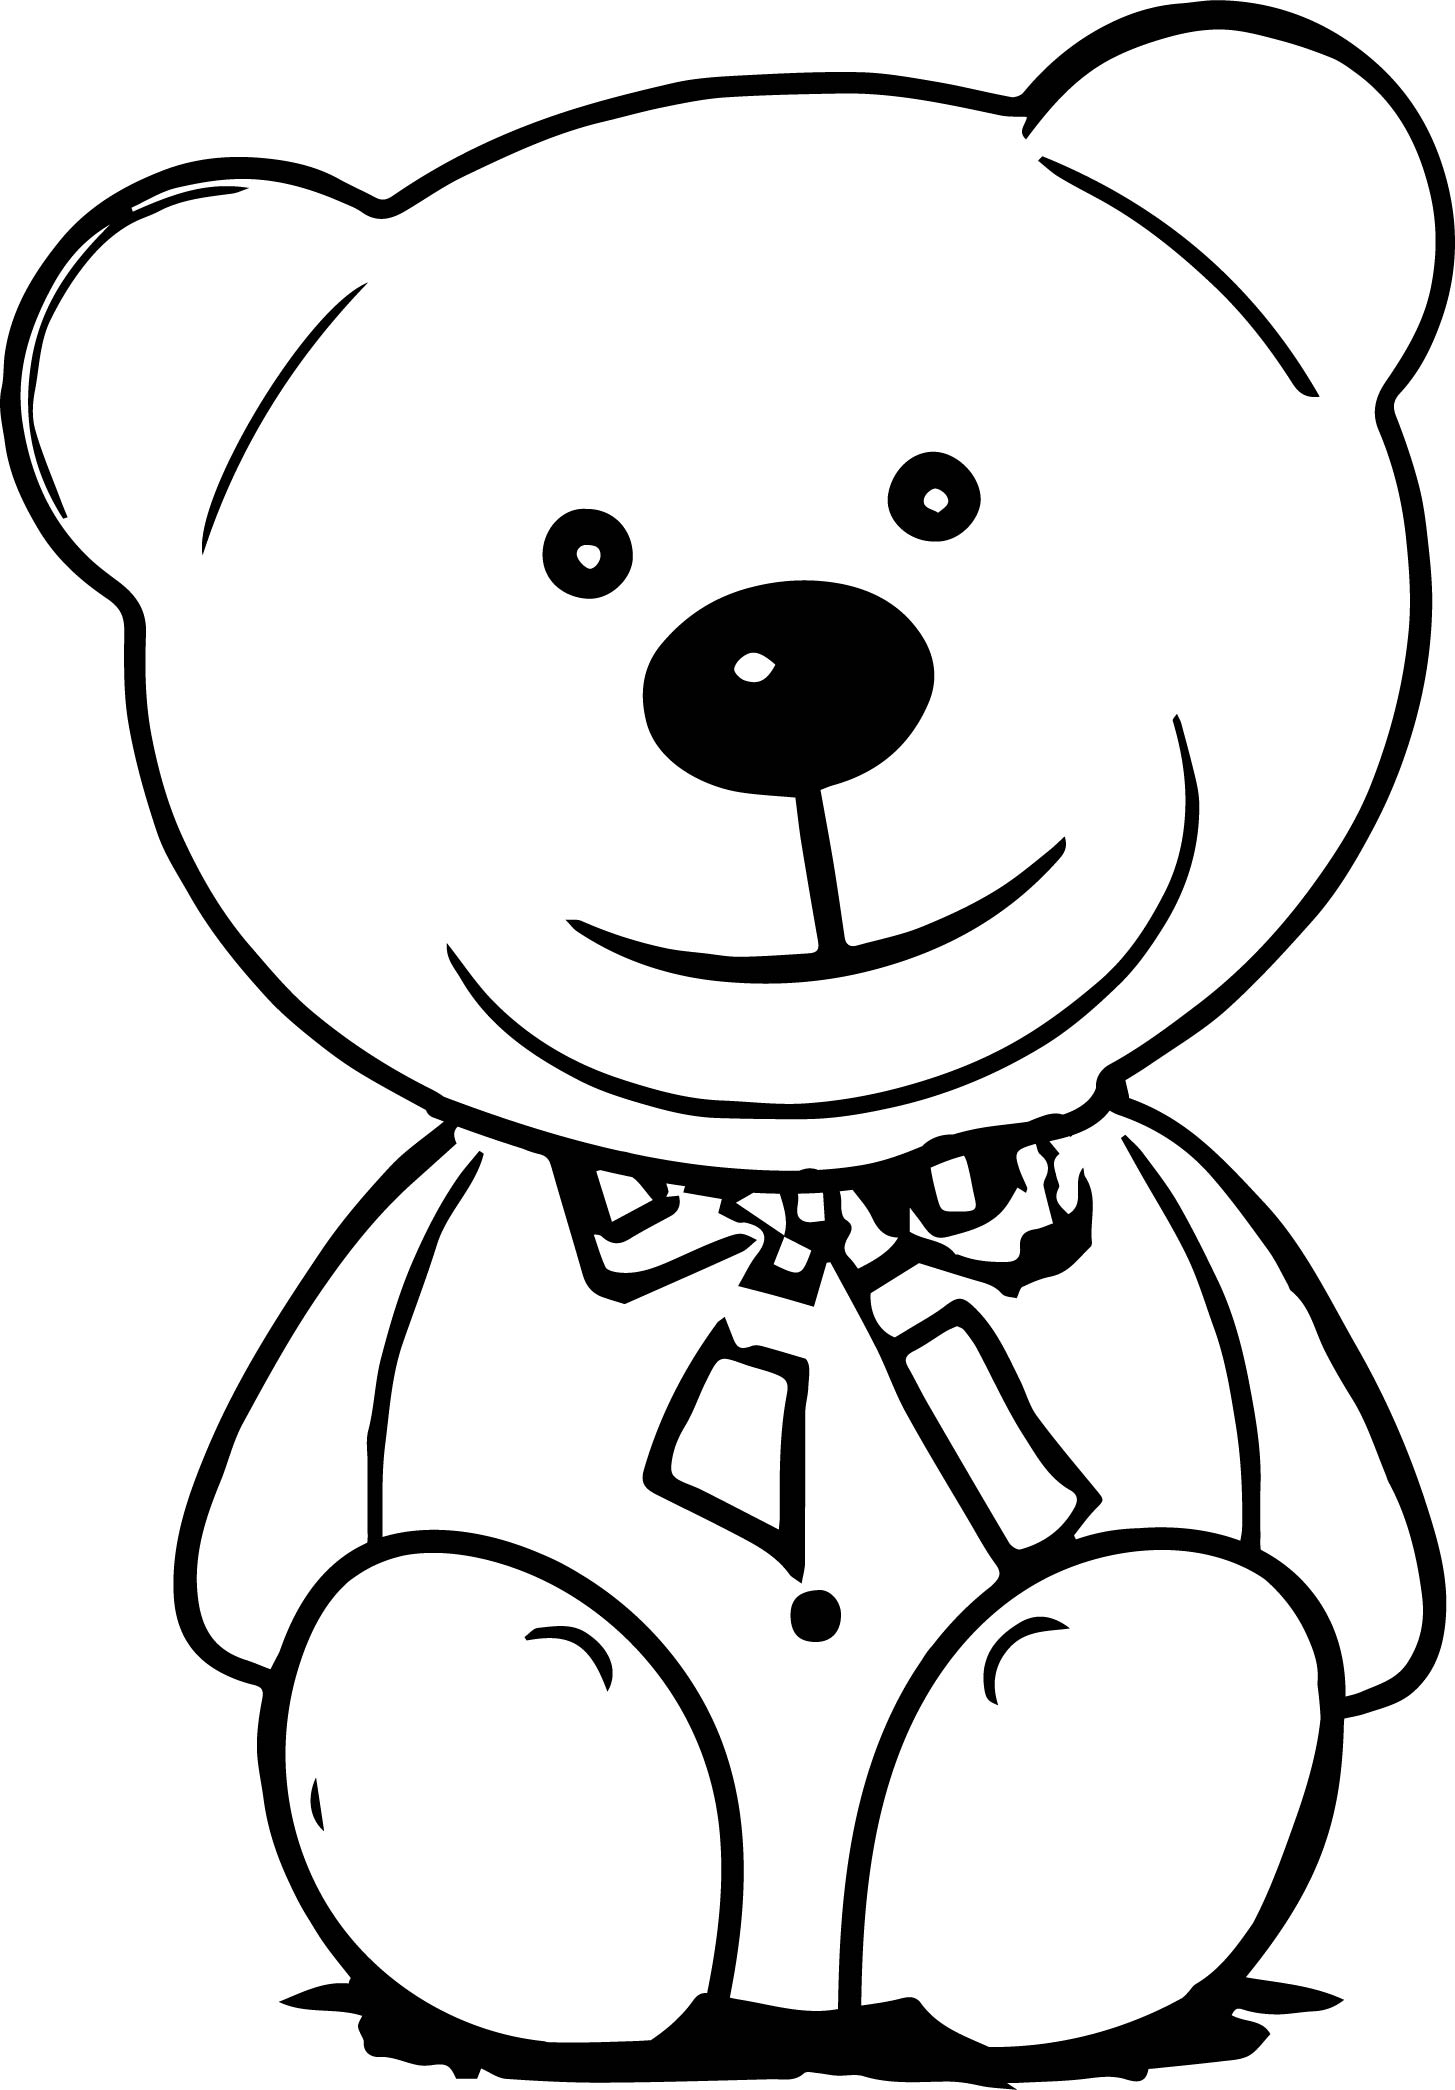 Their Bear Coloring Page